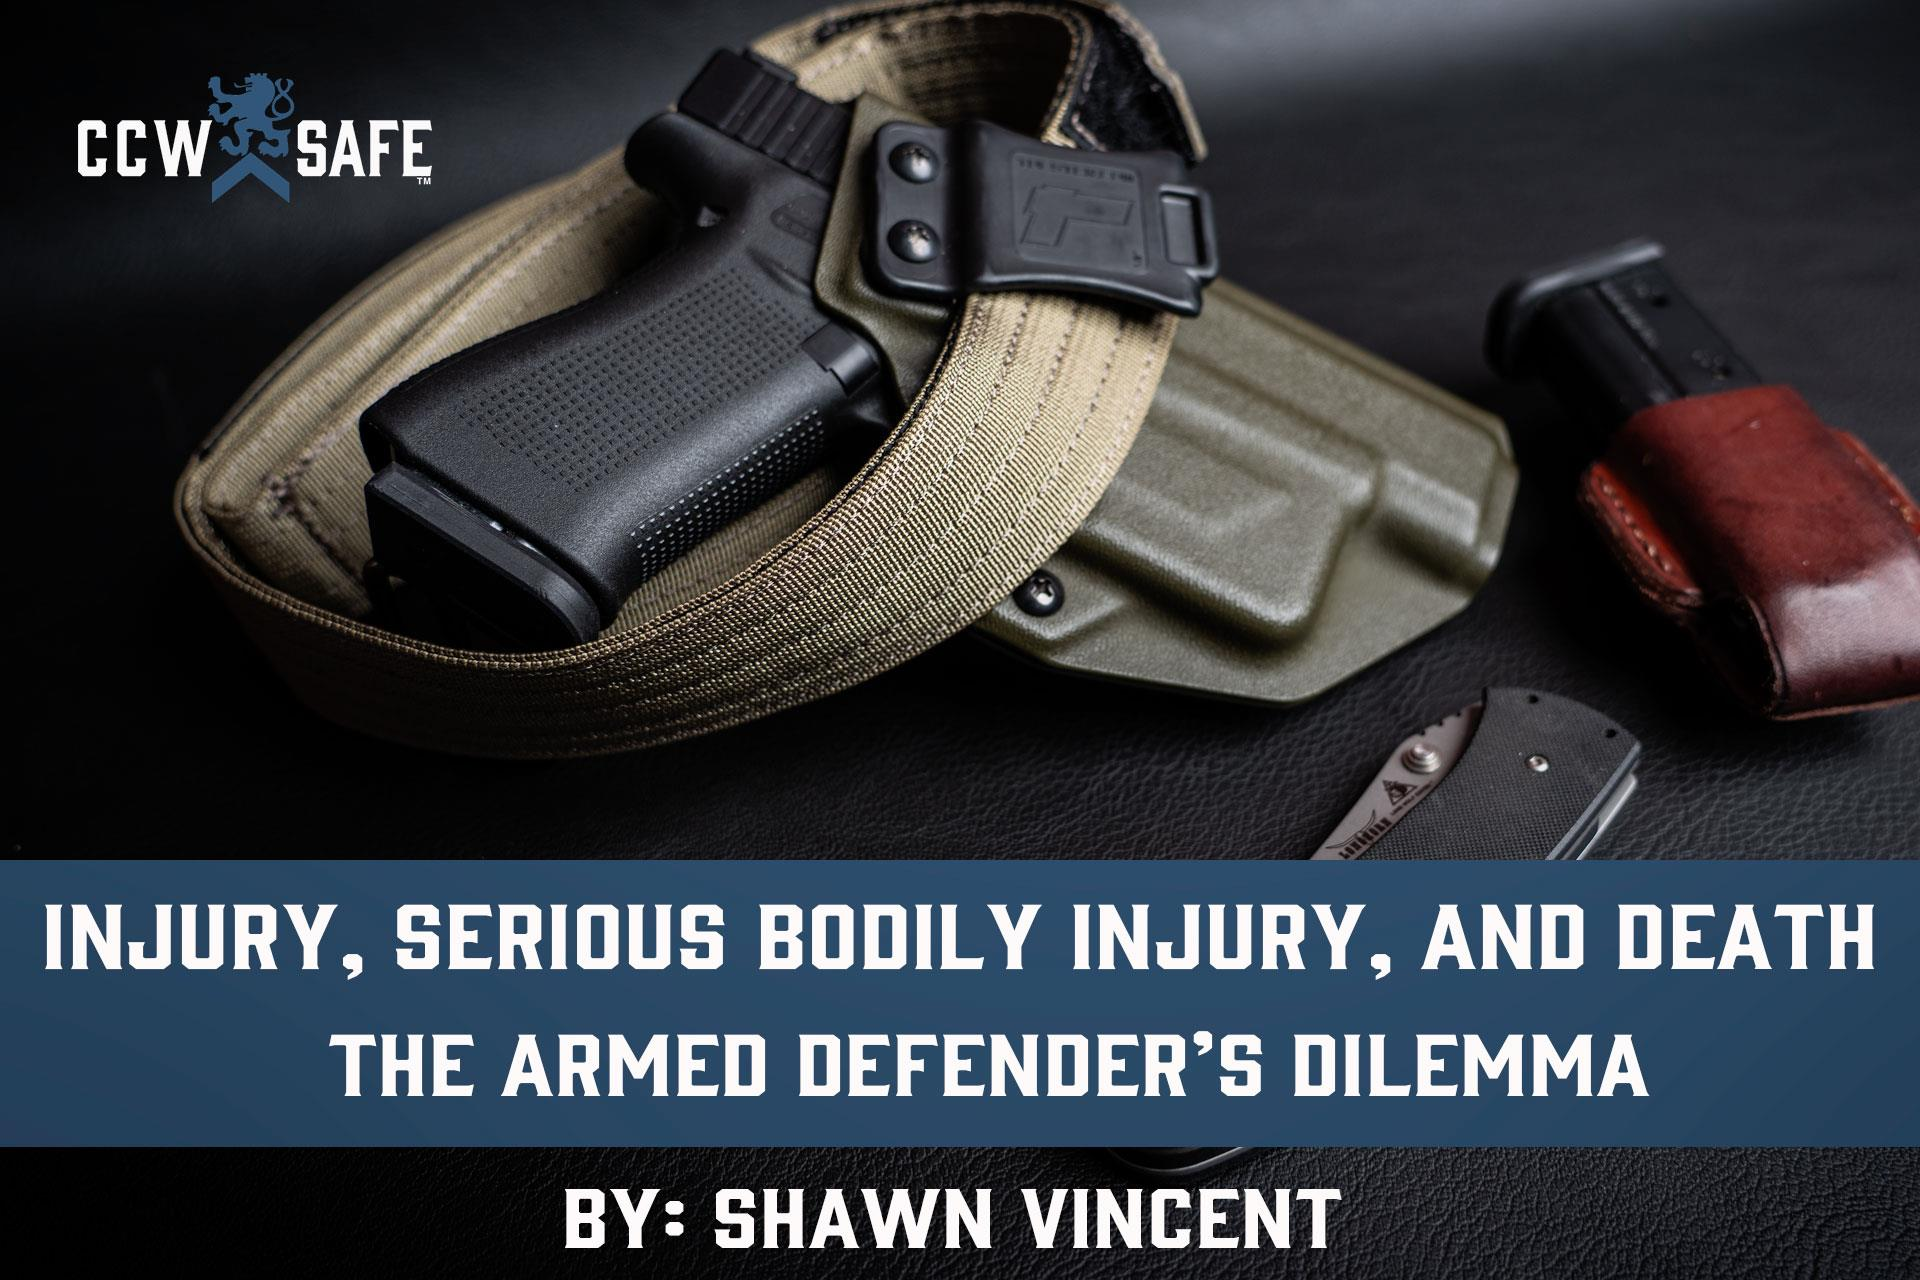 Injury, Serious Bodily Injury, and Death The armed defender's dilemma